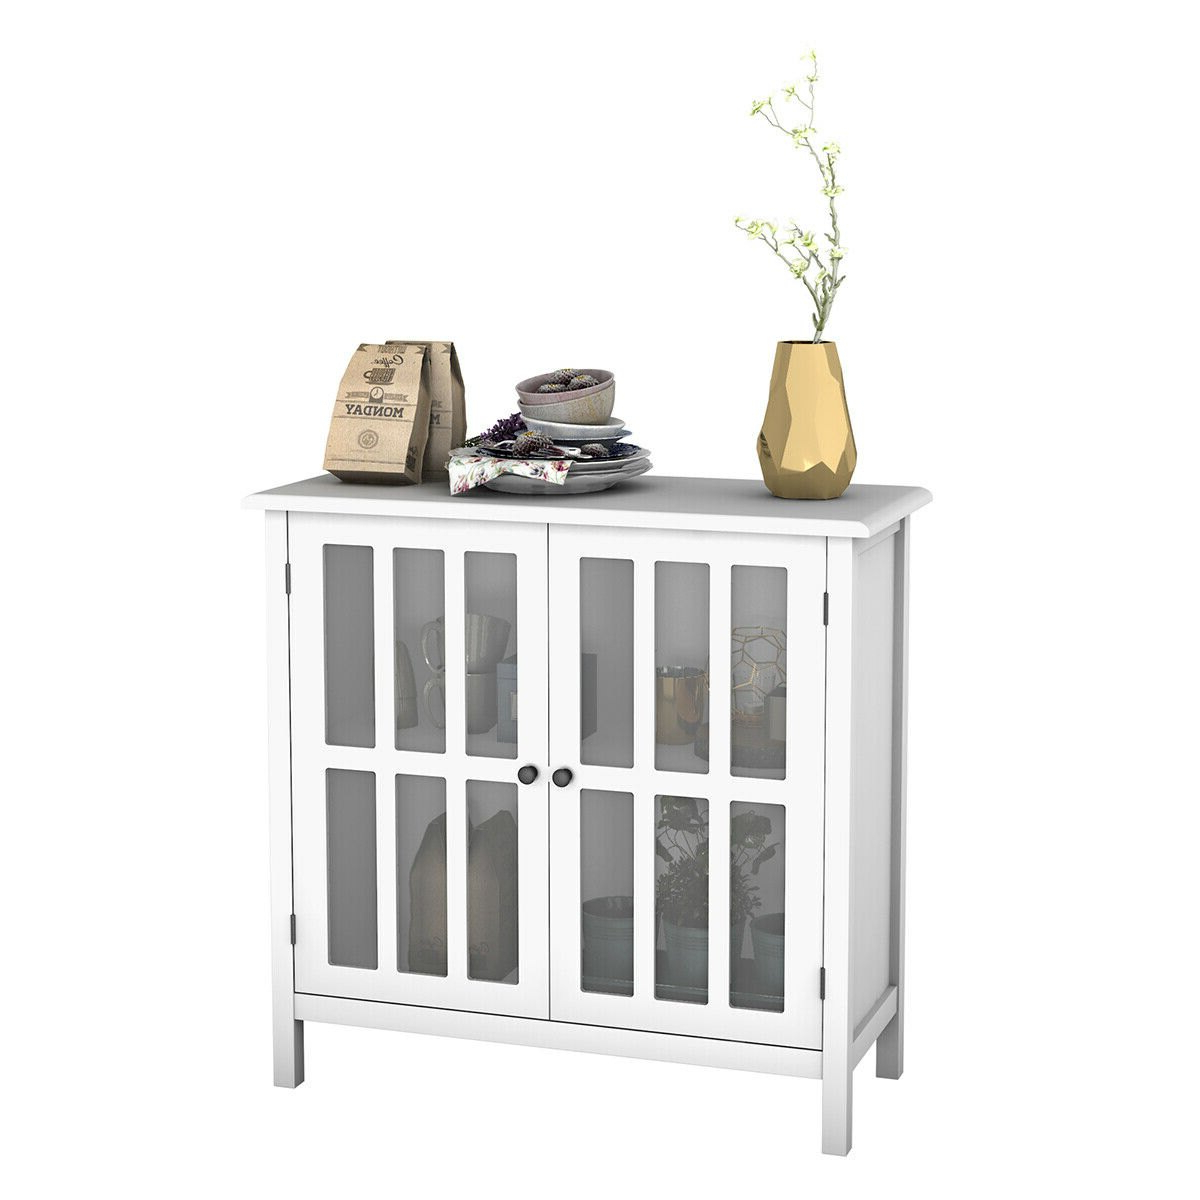 Costway: Costway Storage Buffet Cabinet Glass Door Sideboard Console Table  Server Display White | Rakuten Throughout 3 Drawer Titanium Buffets (View 5 of 20)